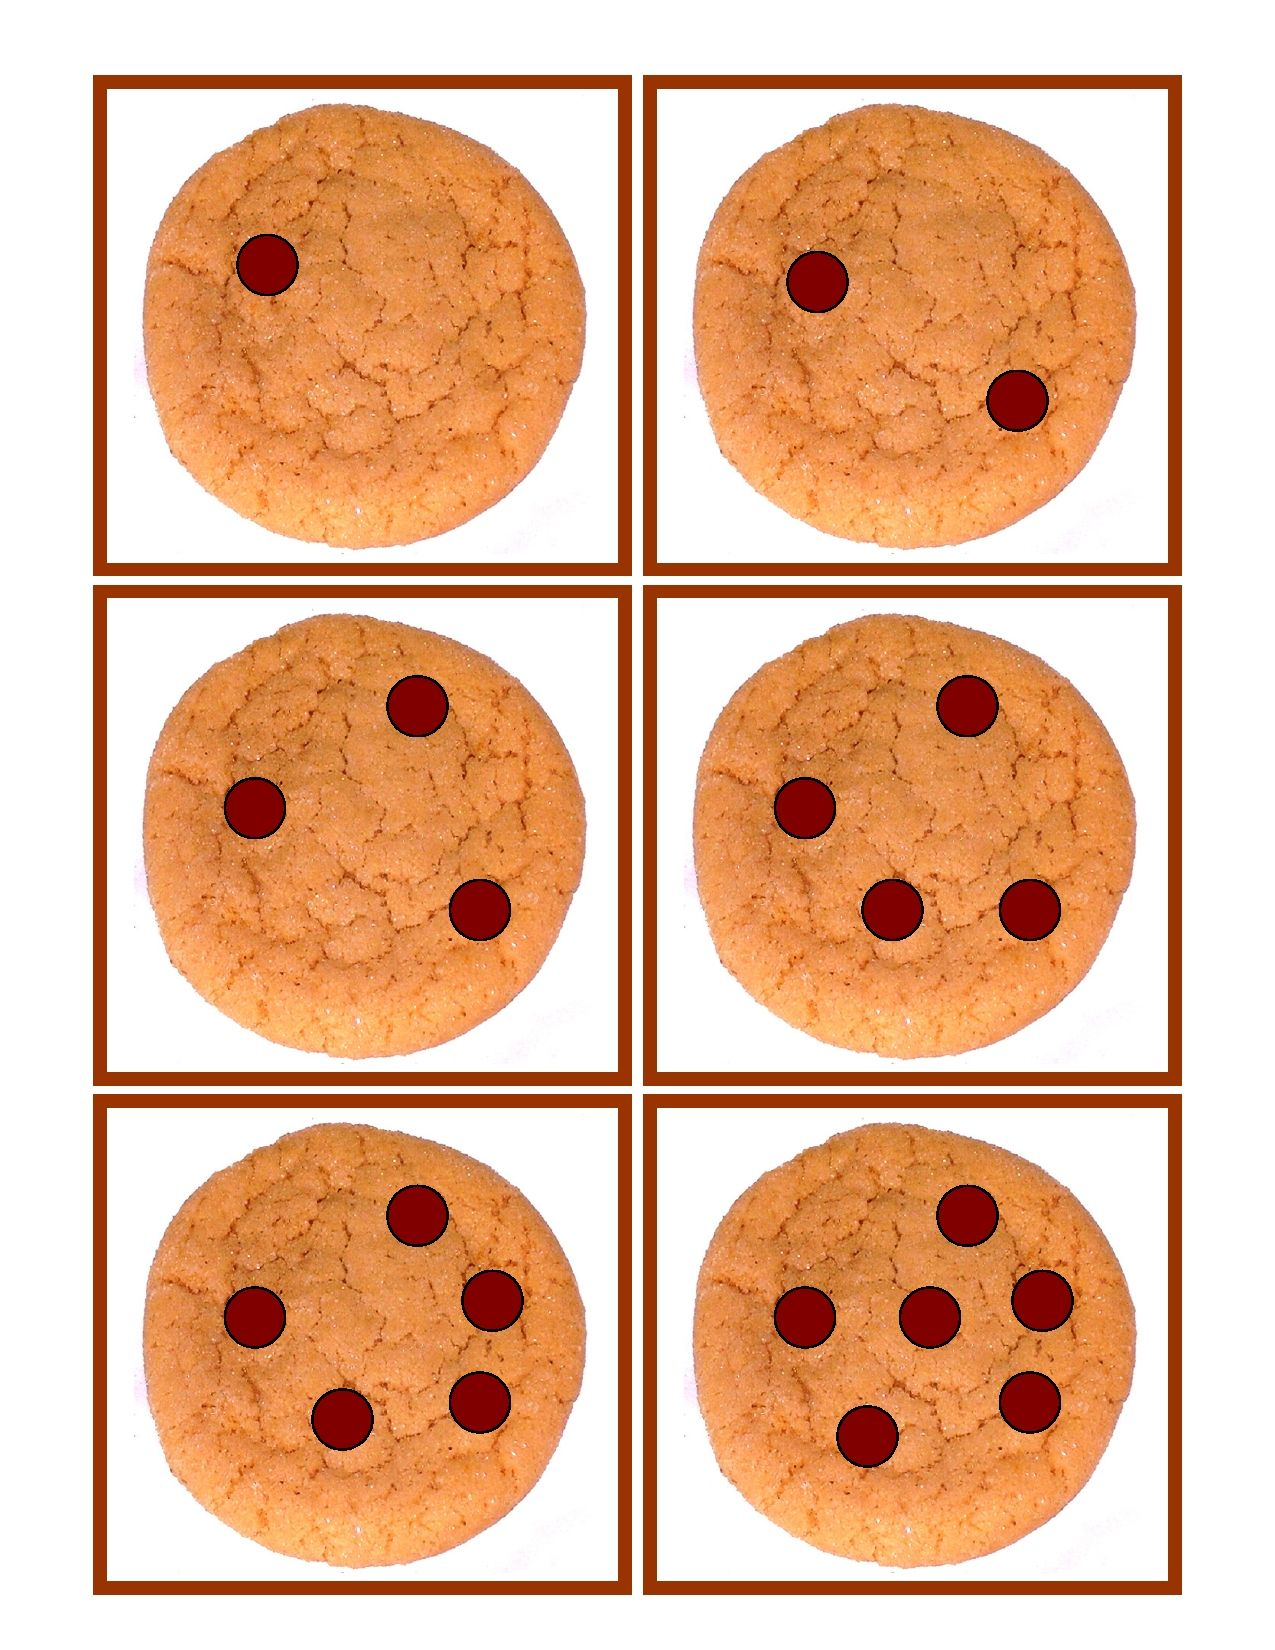 Chocolate Chip Cookie Counting Game develops basic counting skills ...